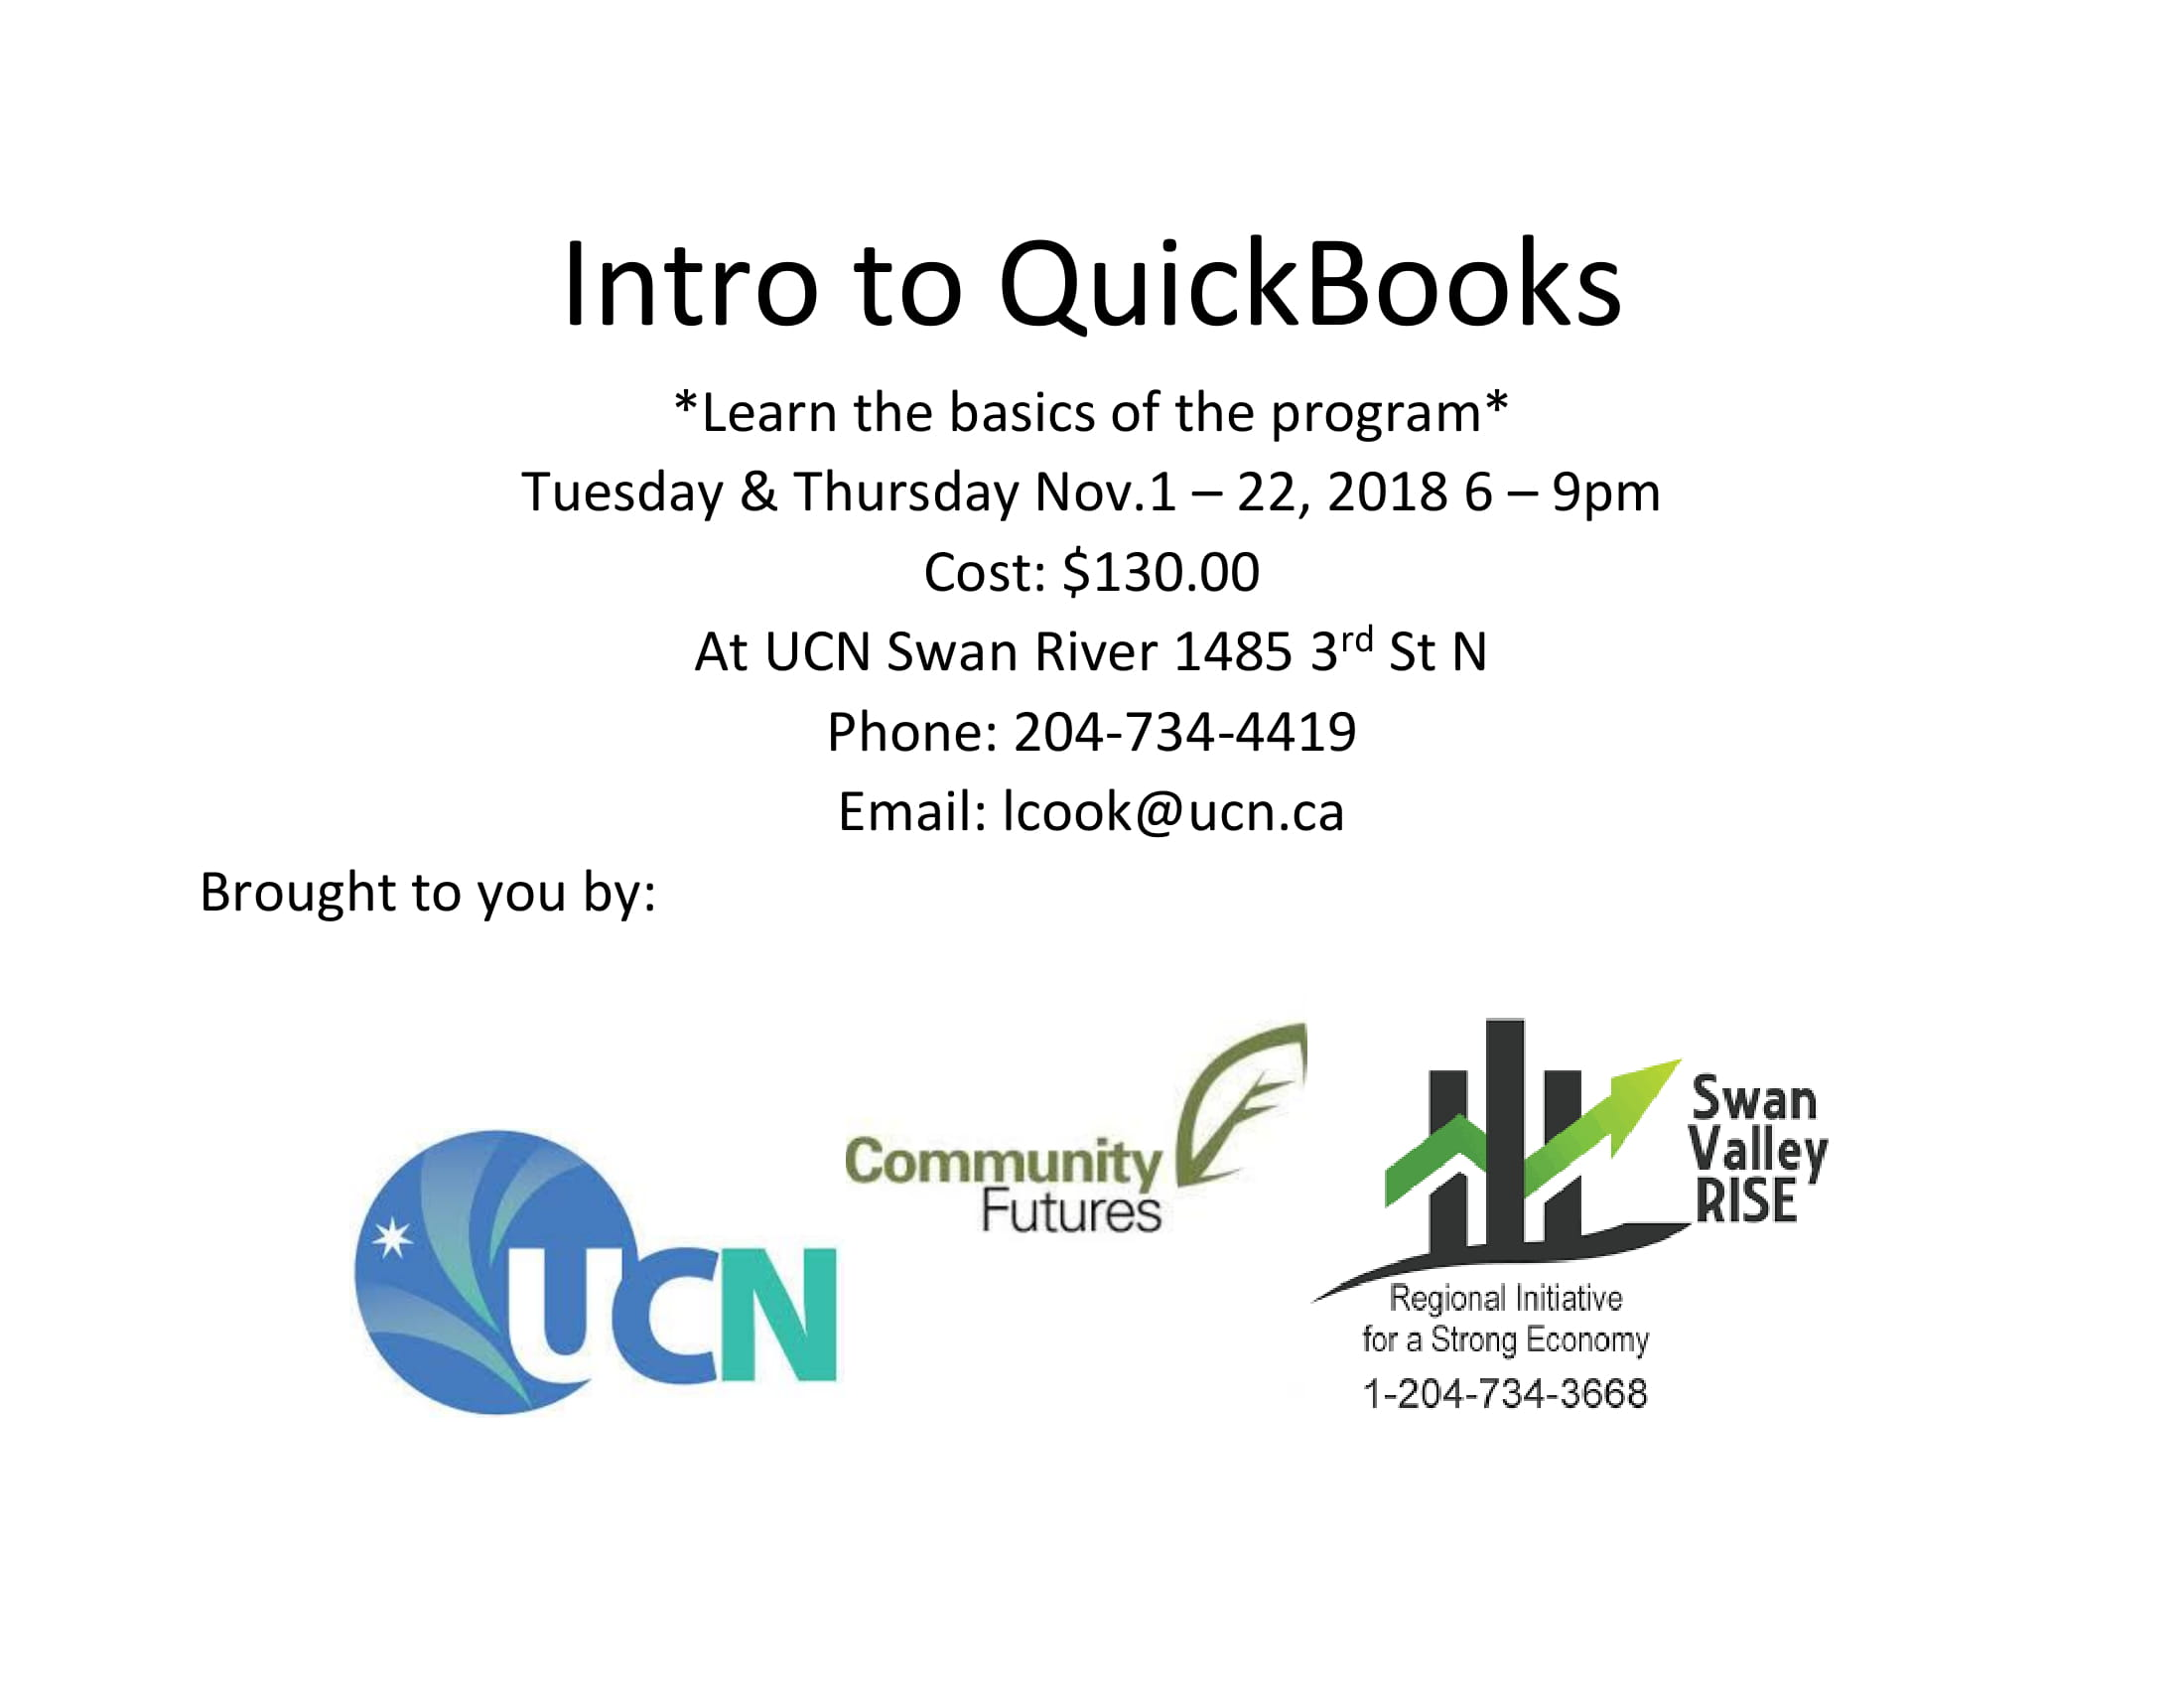 Intro to QuickBooks AD 1